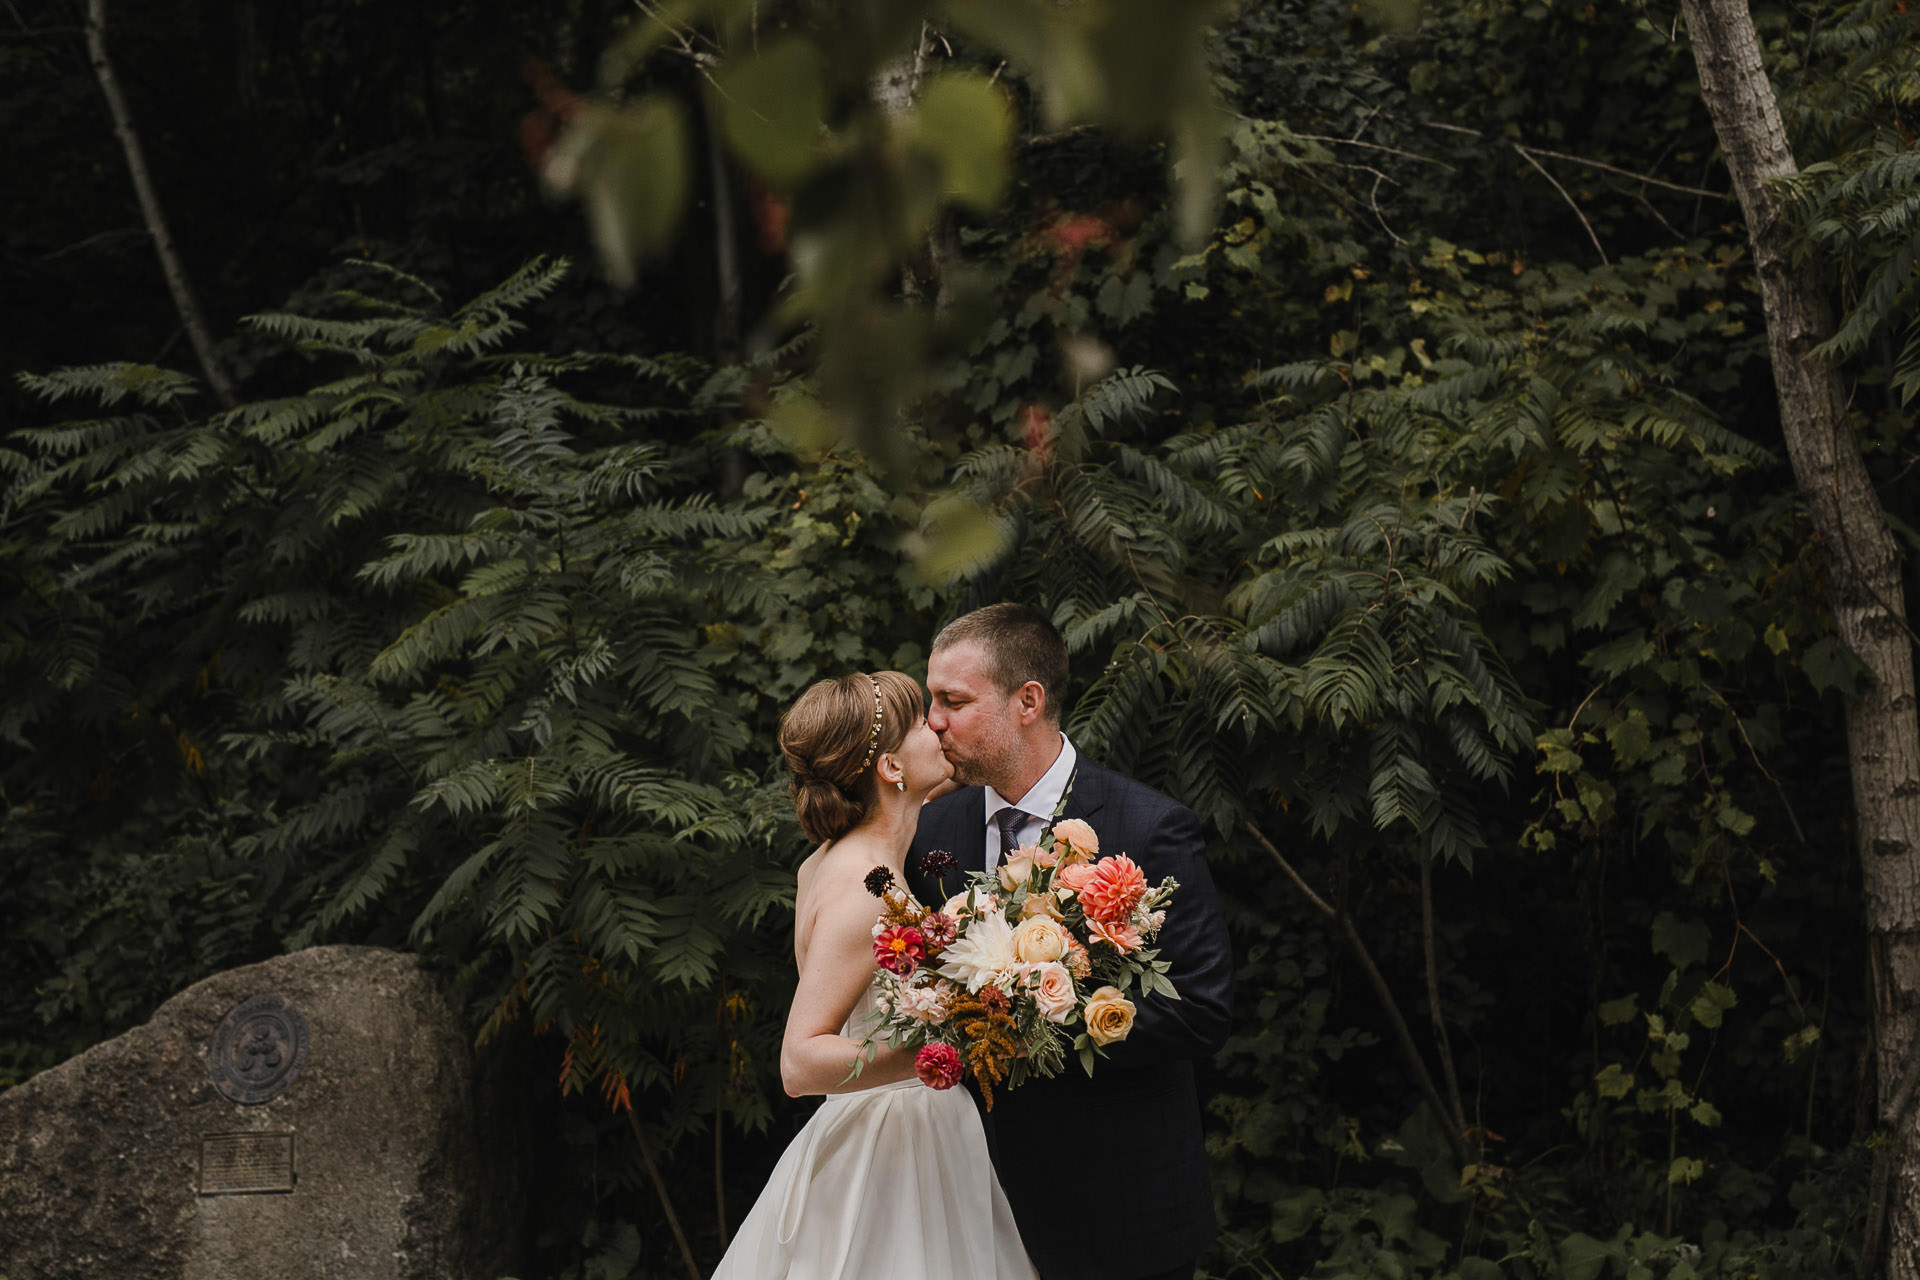 Evergreen Brickworks wedding photographer - first look kiss